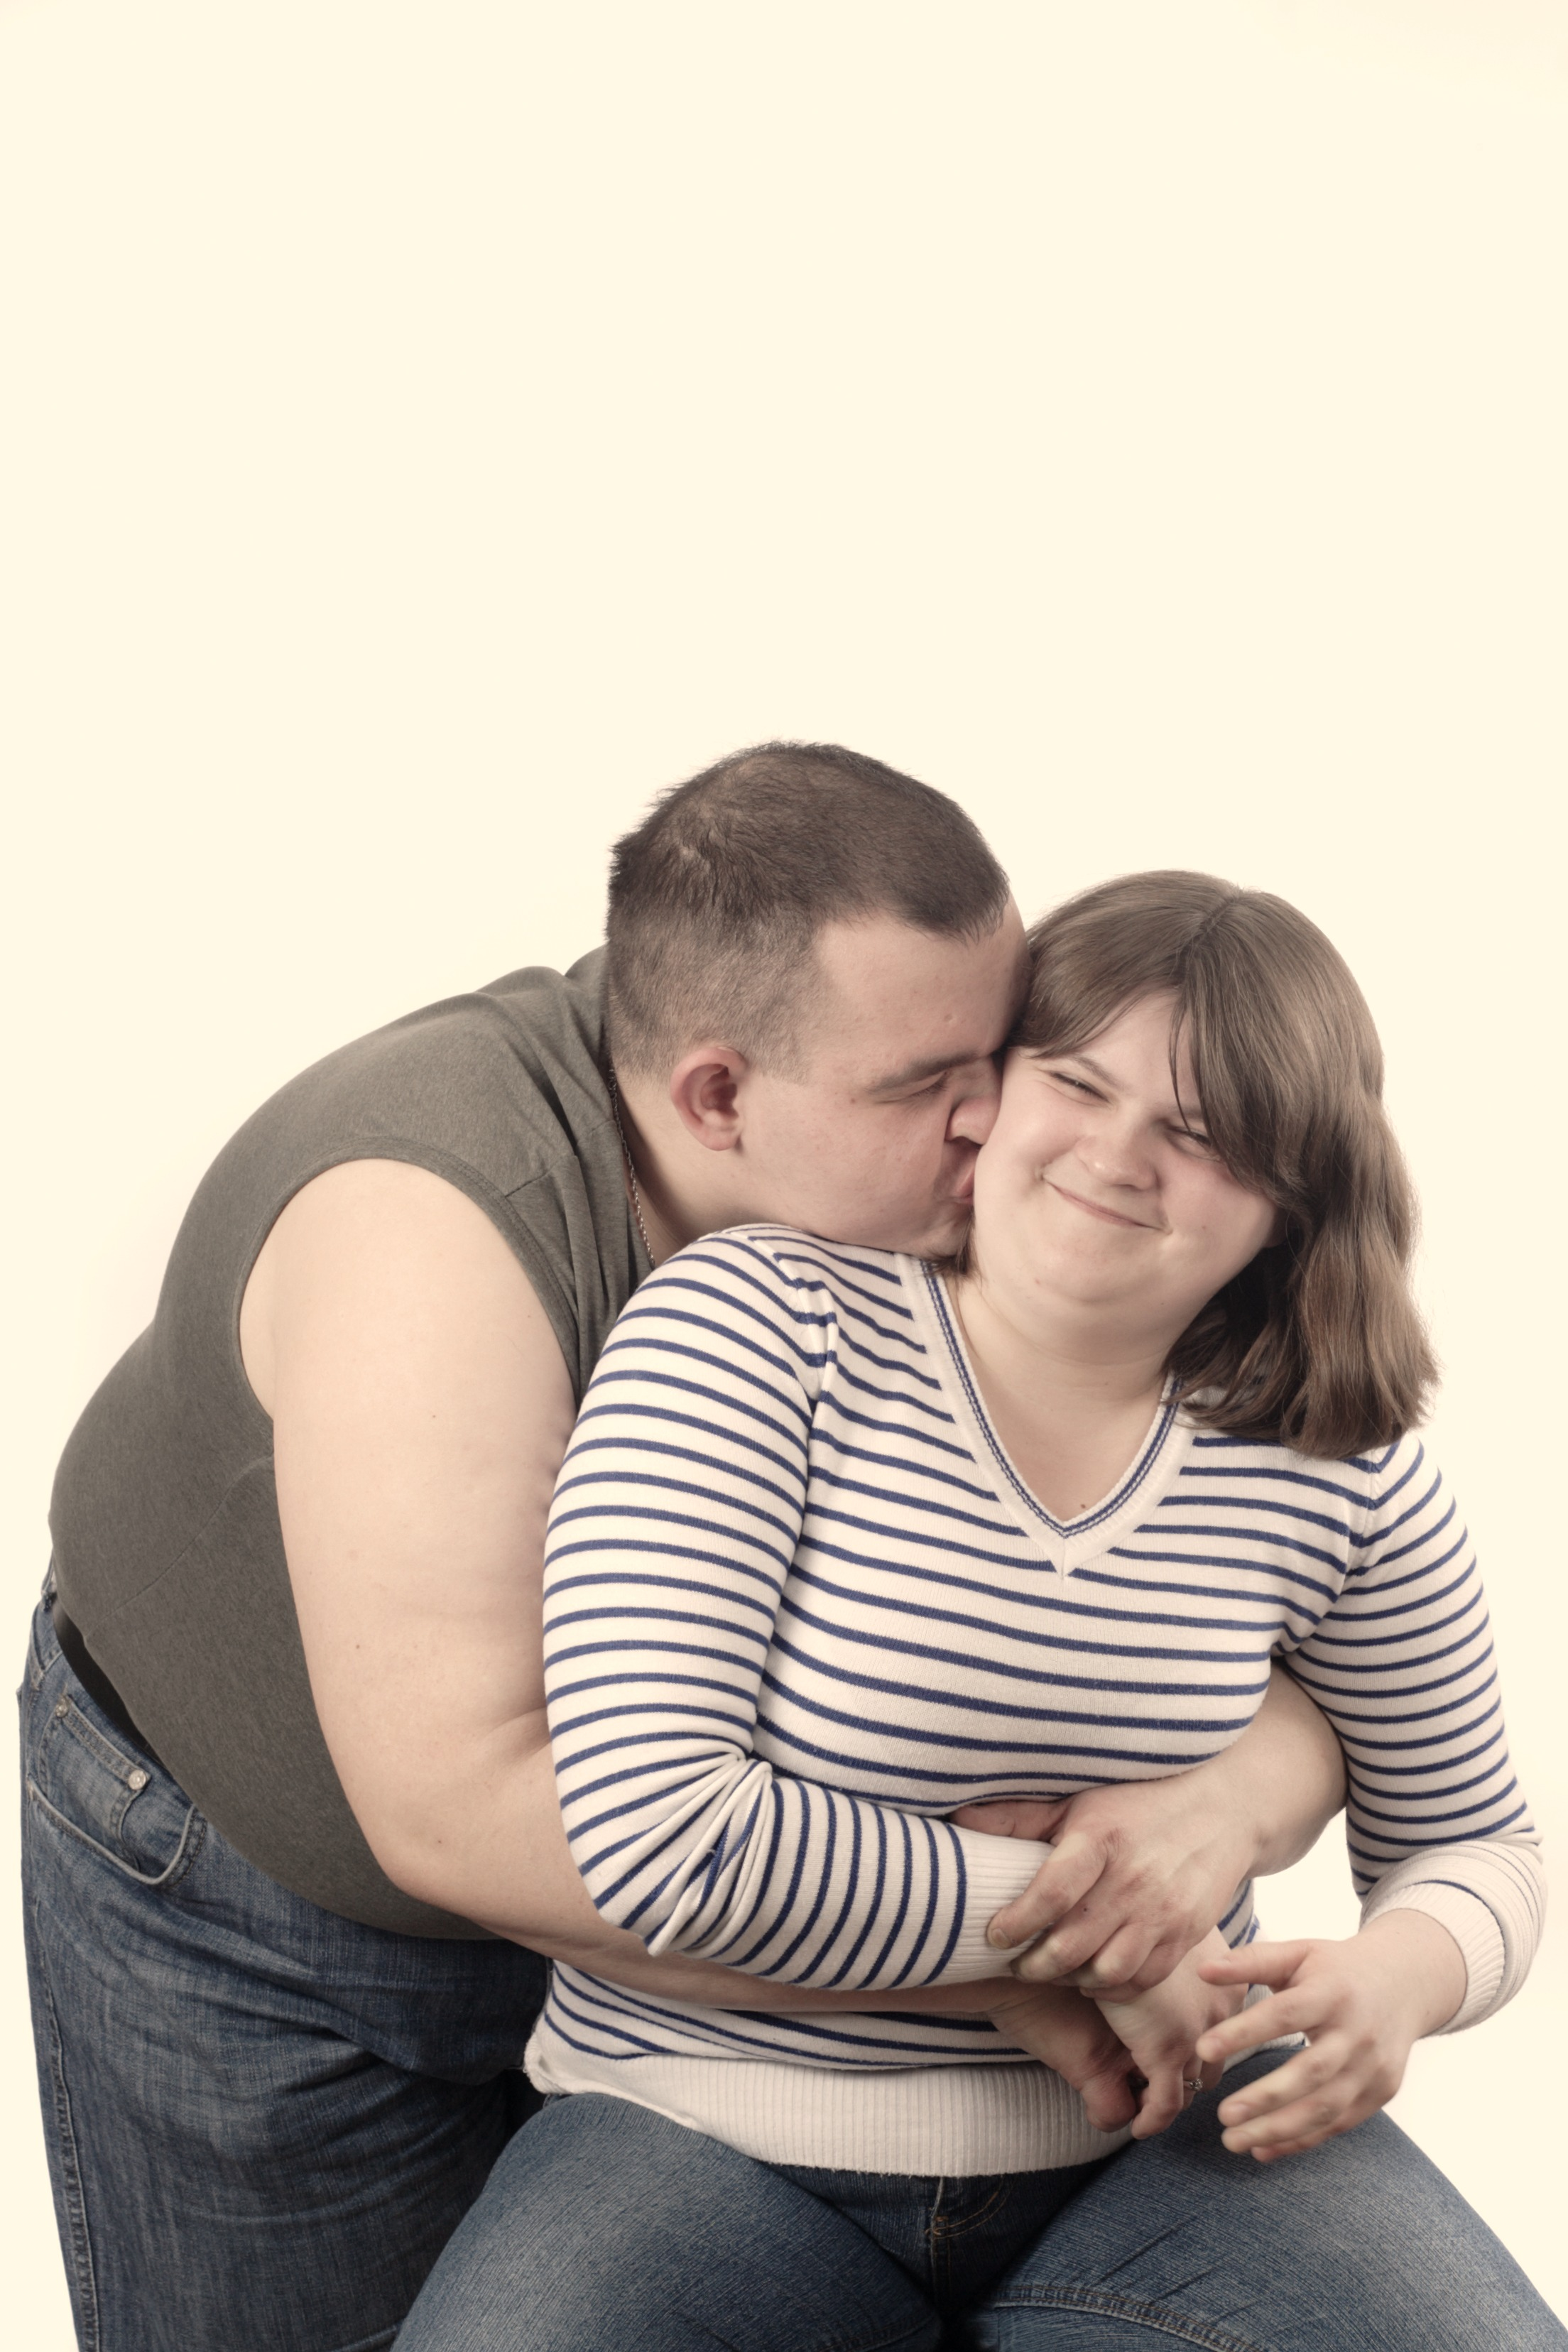 Fat phobia online dating